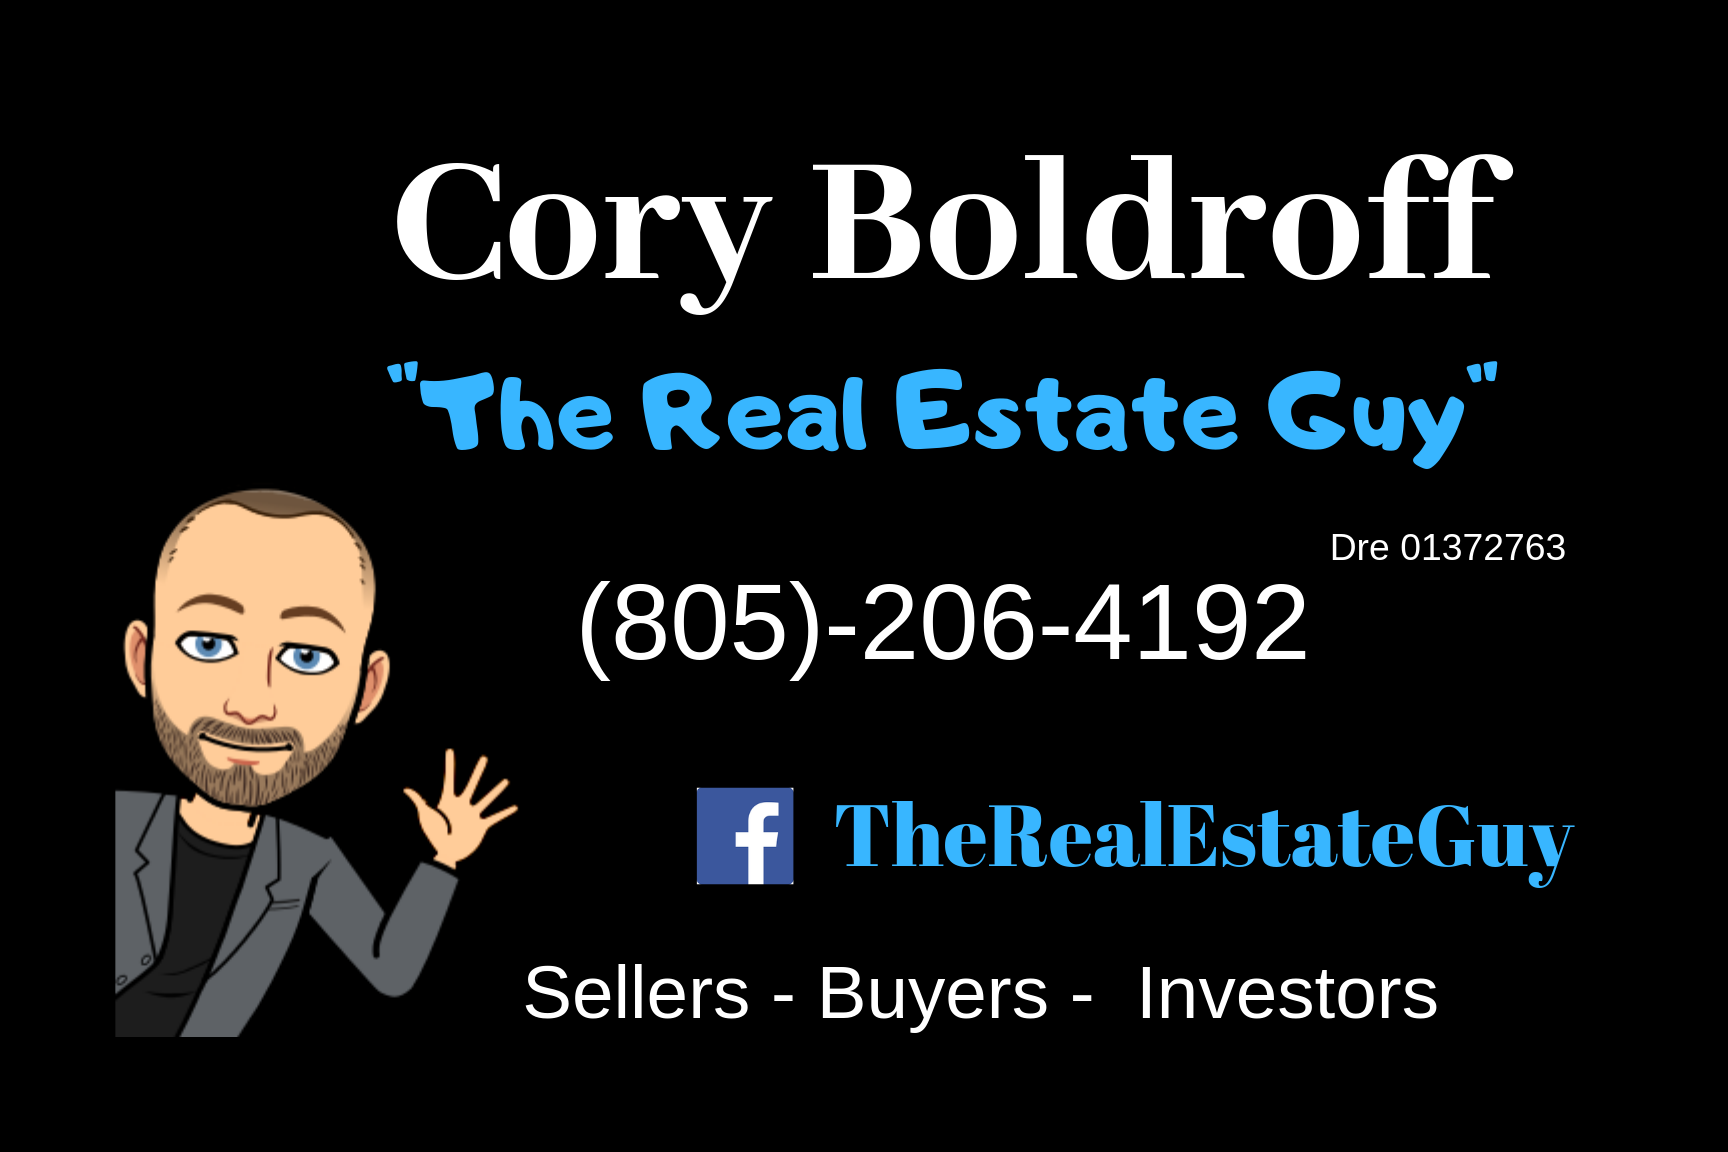 The Real Estate Guy- Sellers, Buyers & Investors